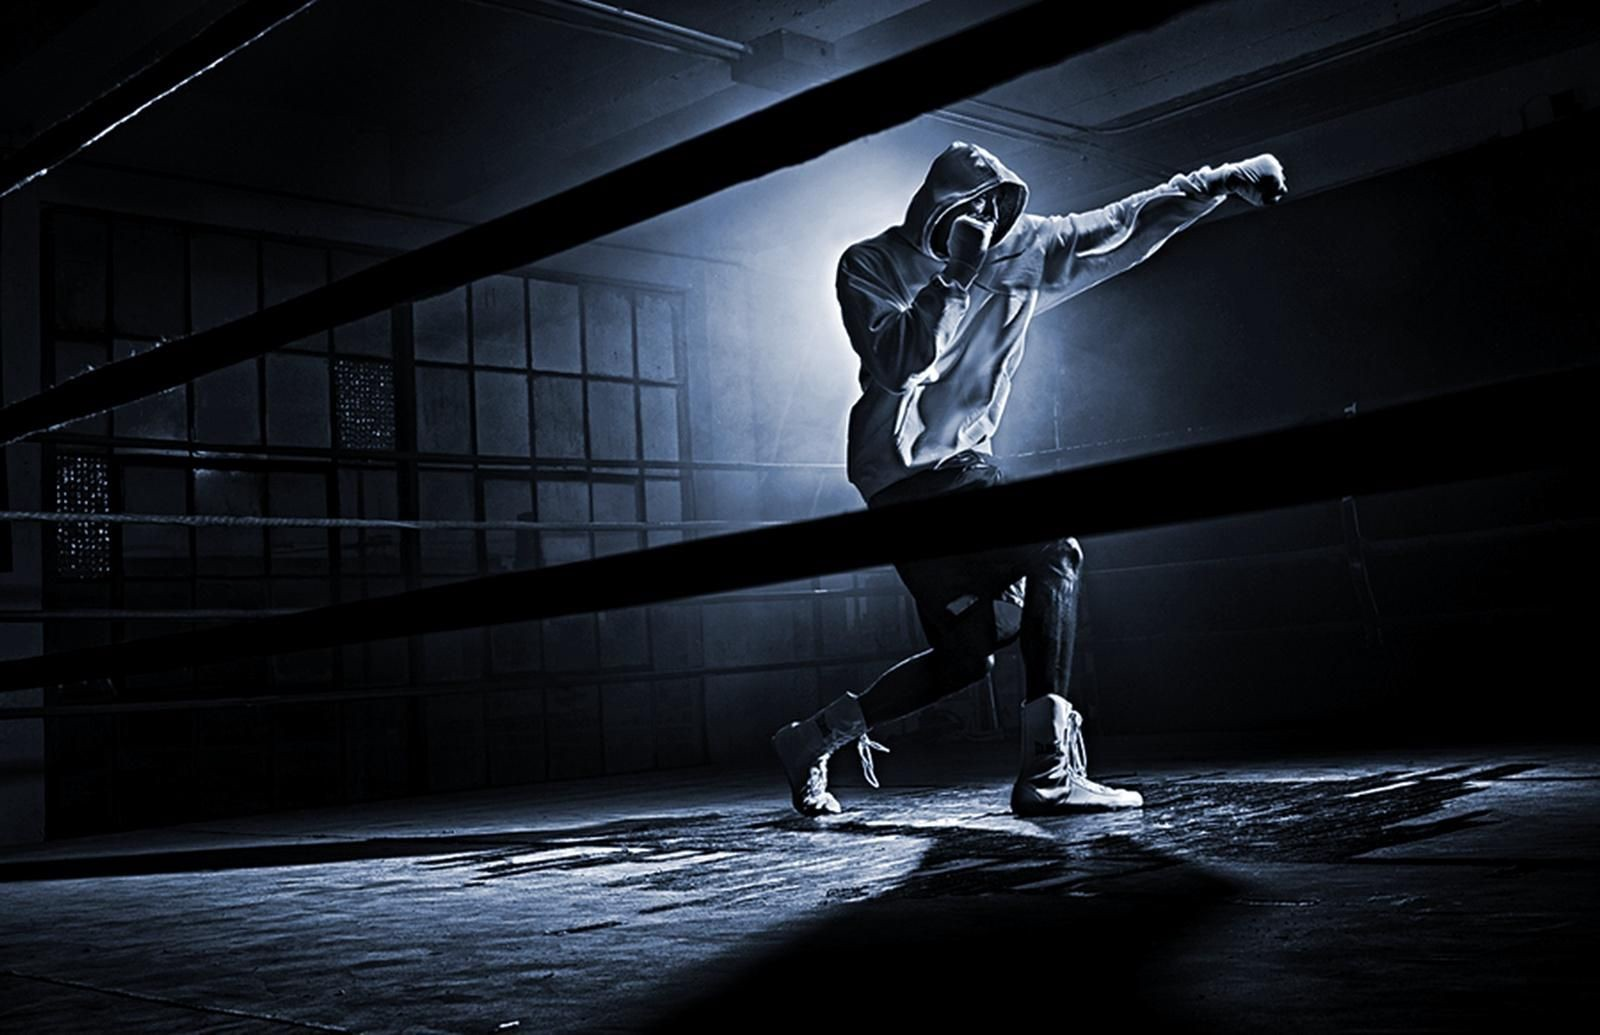 Boxing For Fitness and Cardiopulmonary Benefits